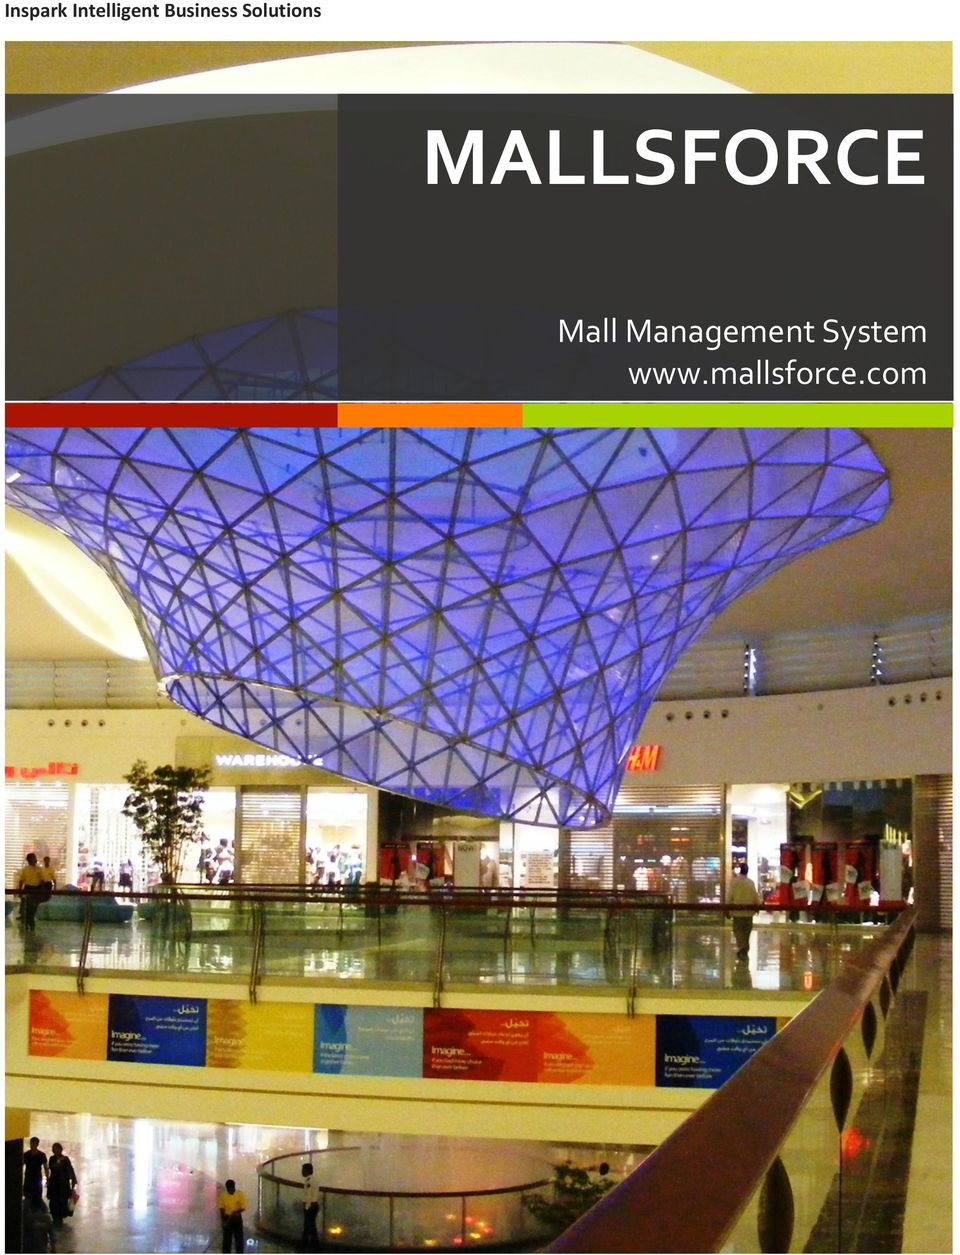 MALLSFORCE Mall